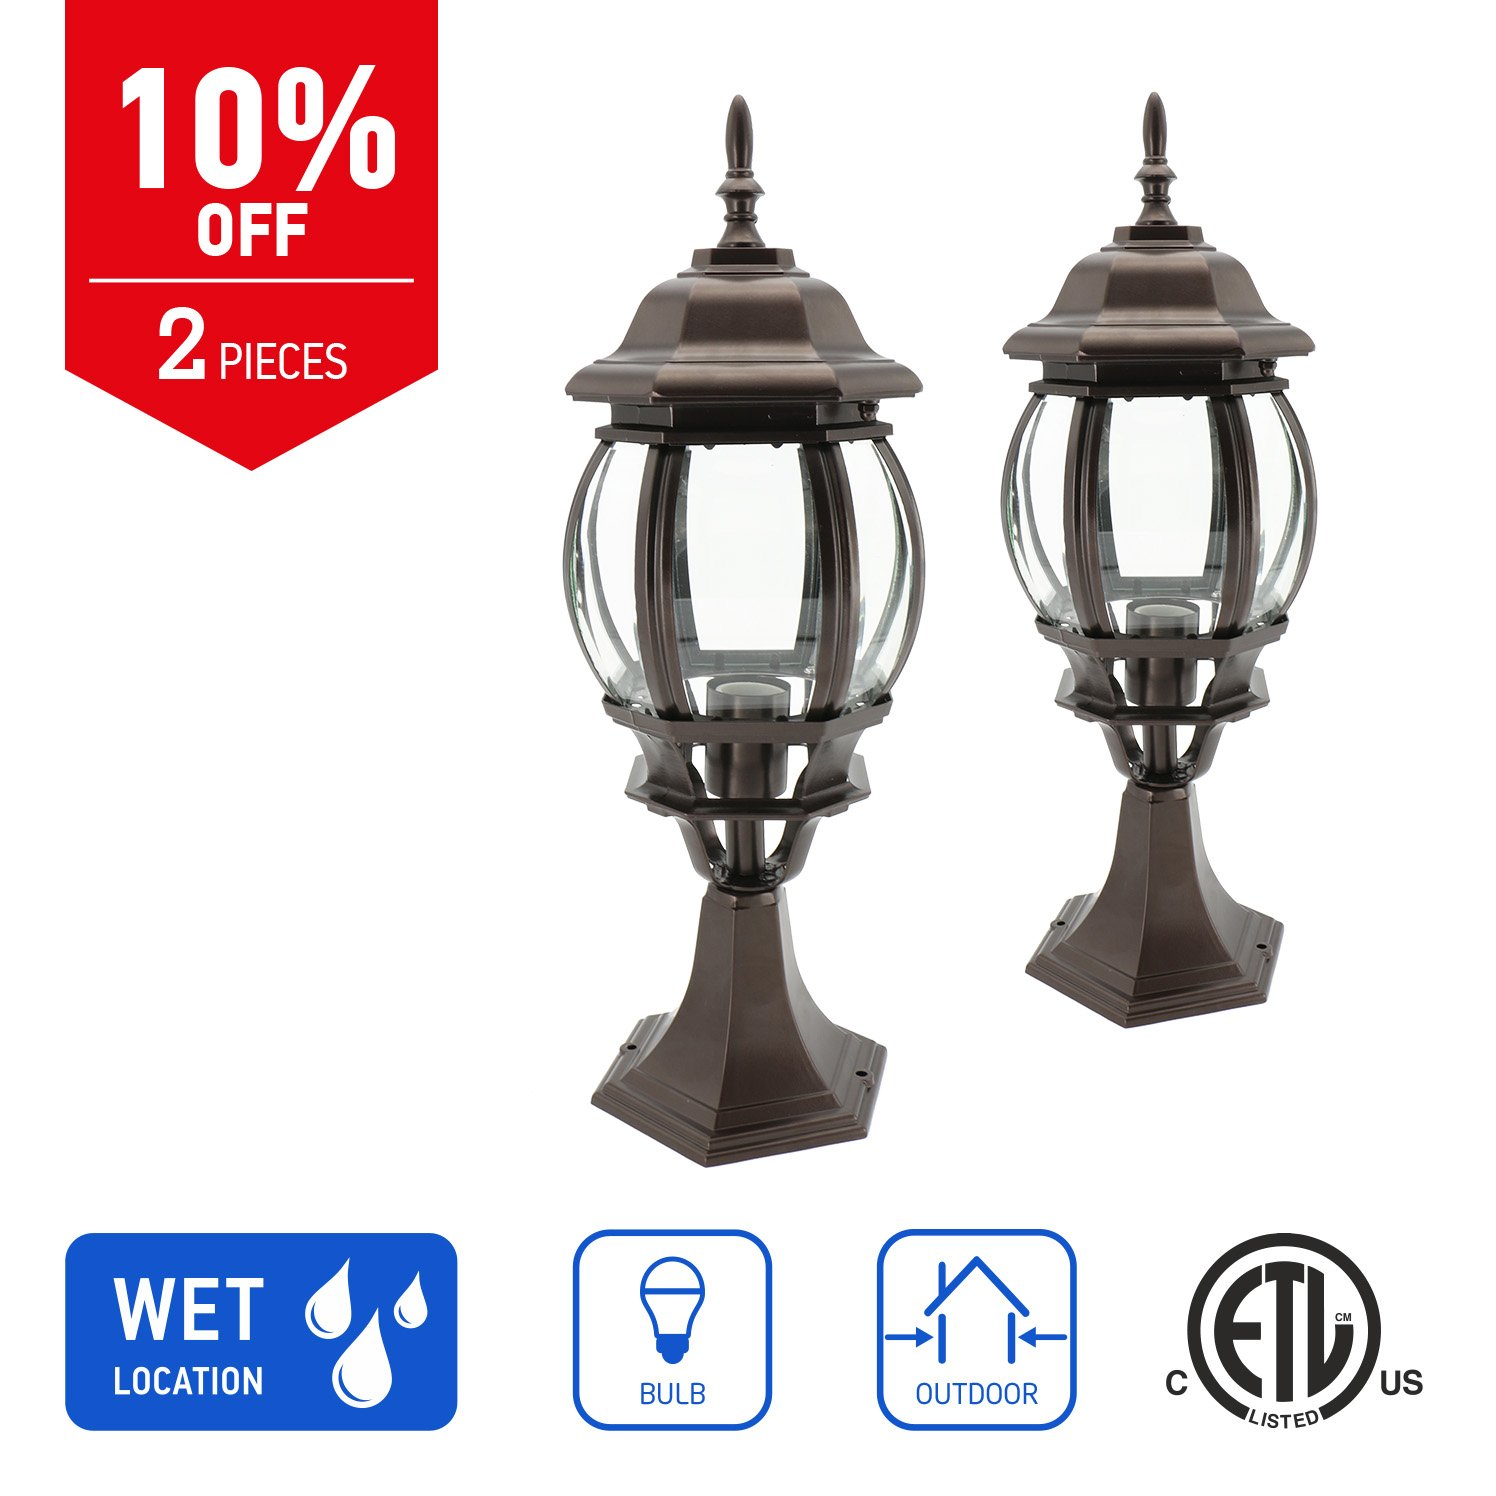 IN HOME 1-Light Outdoor Garden Post Lantern L08 Lighting Fixture, Traditional Post Lamp Patio with One E26 Base, Water-Proof, Bronze Cast Aluminum Housing, Clear Glass Panels, (2 Pack) ETL Listed